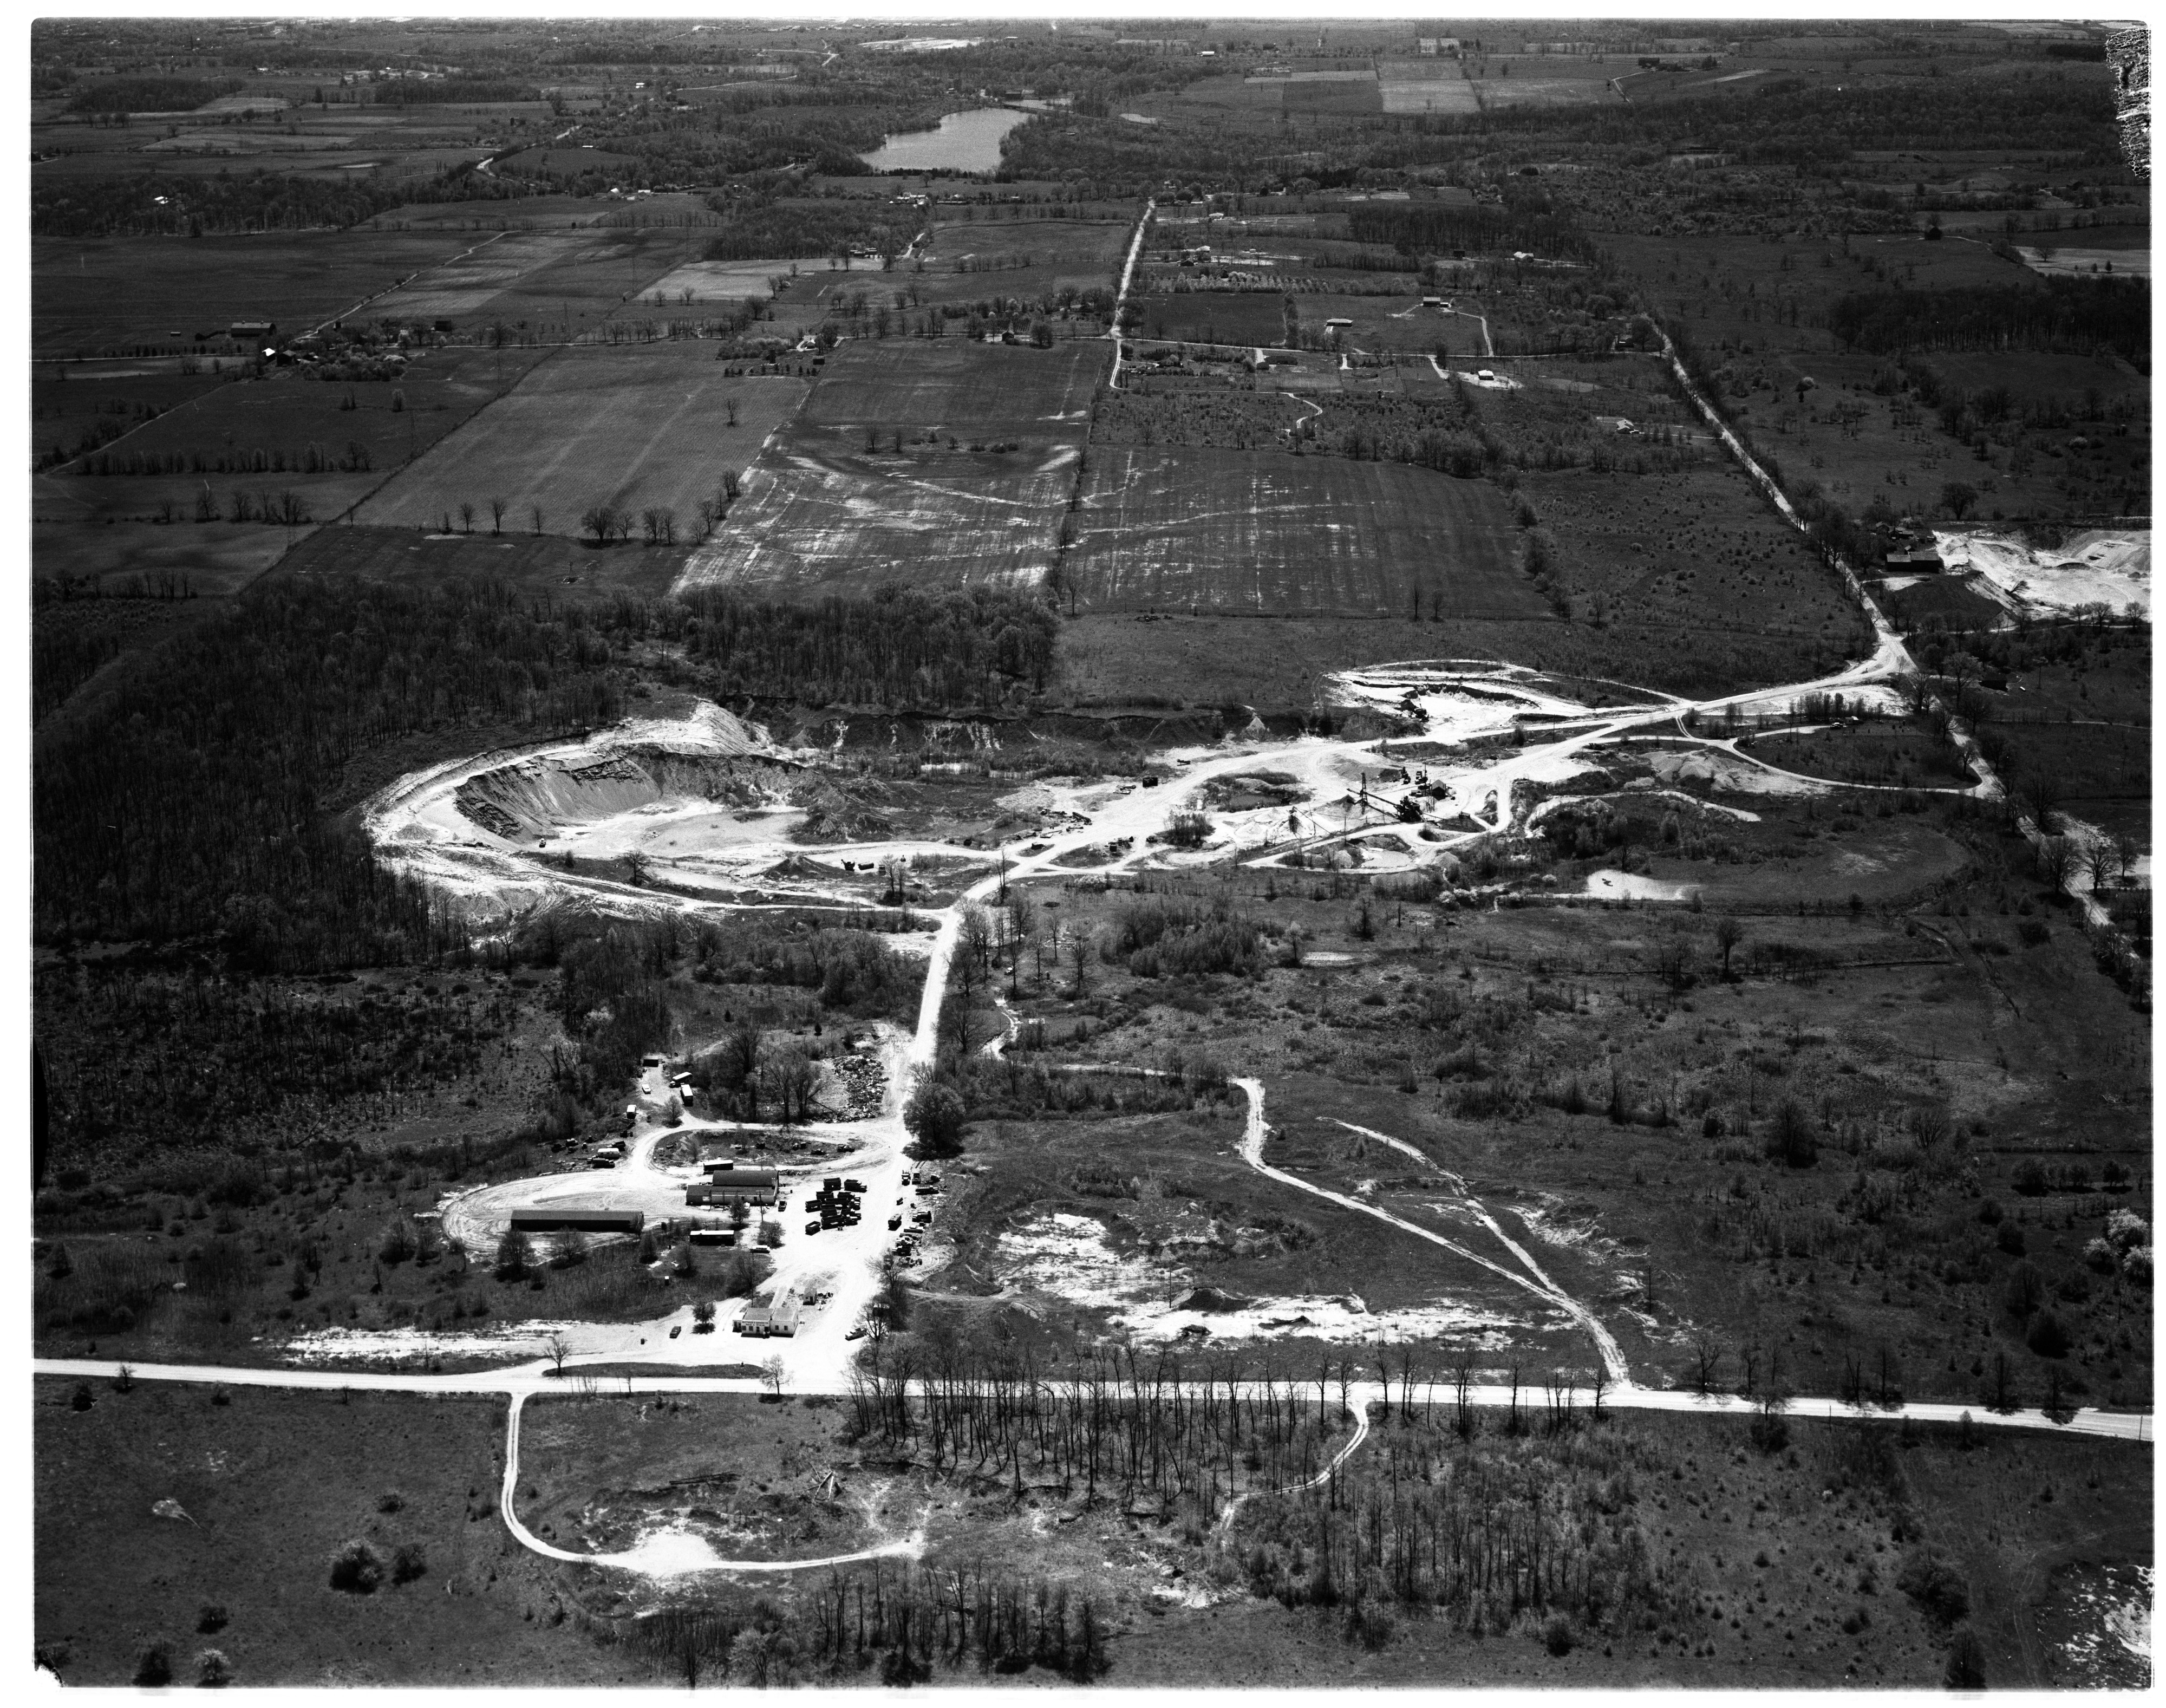 Aerial Photograph of the Whittaker-Gooding Plant, Superior Township, May 1959 image